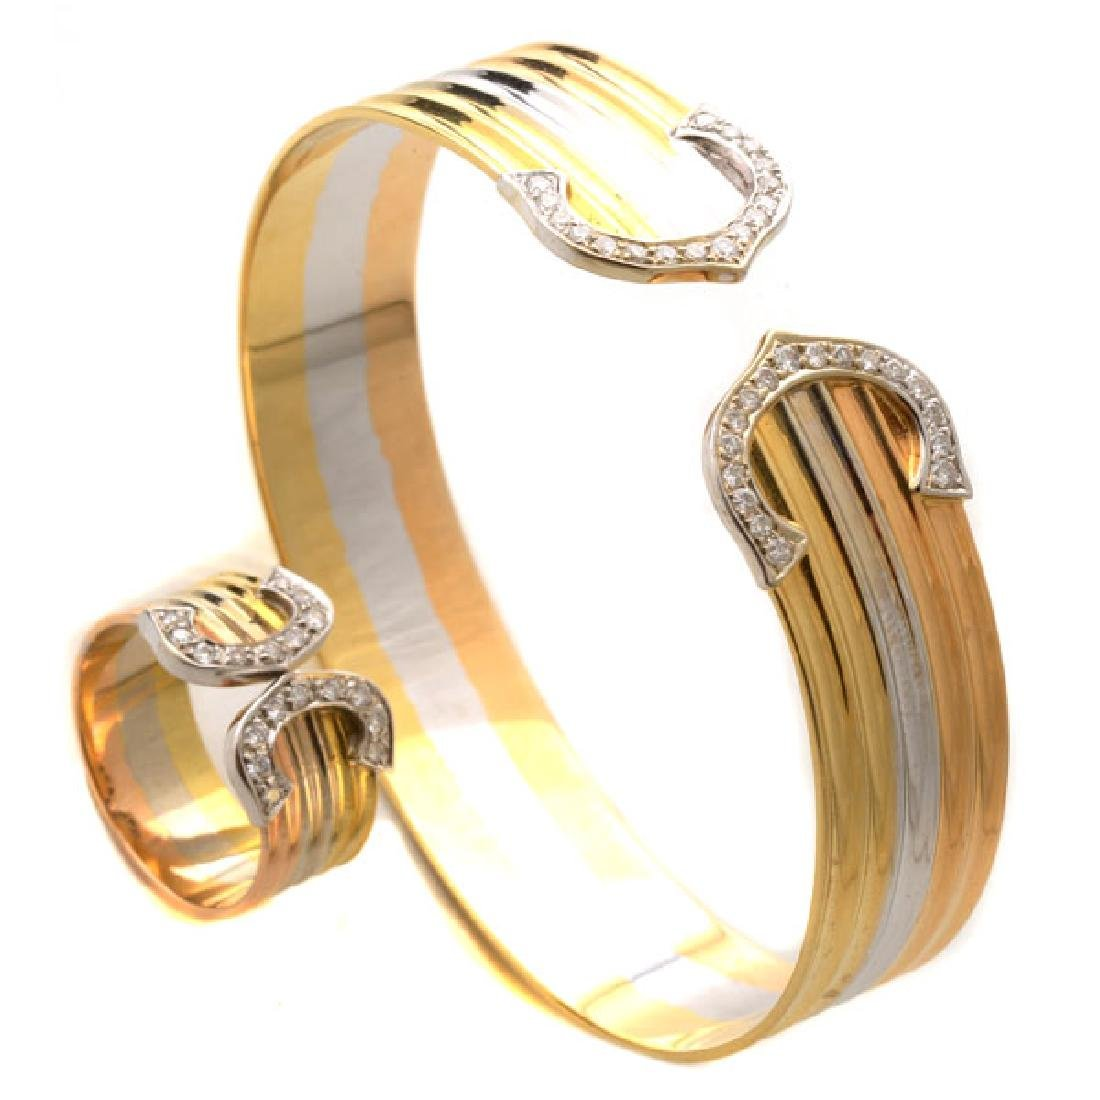 Diamond, 14k Tricolor Gold Jewelry Suite.